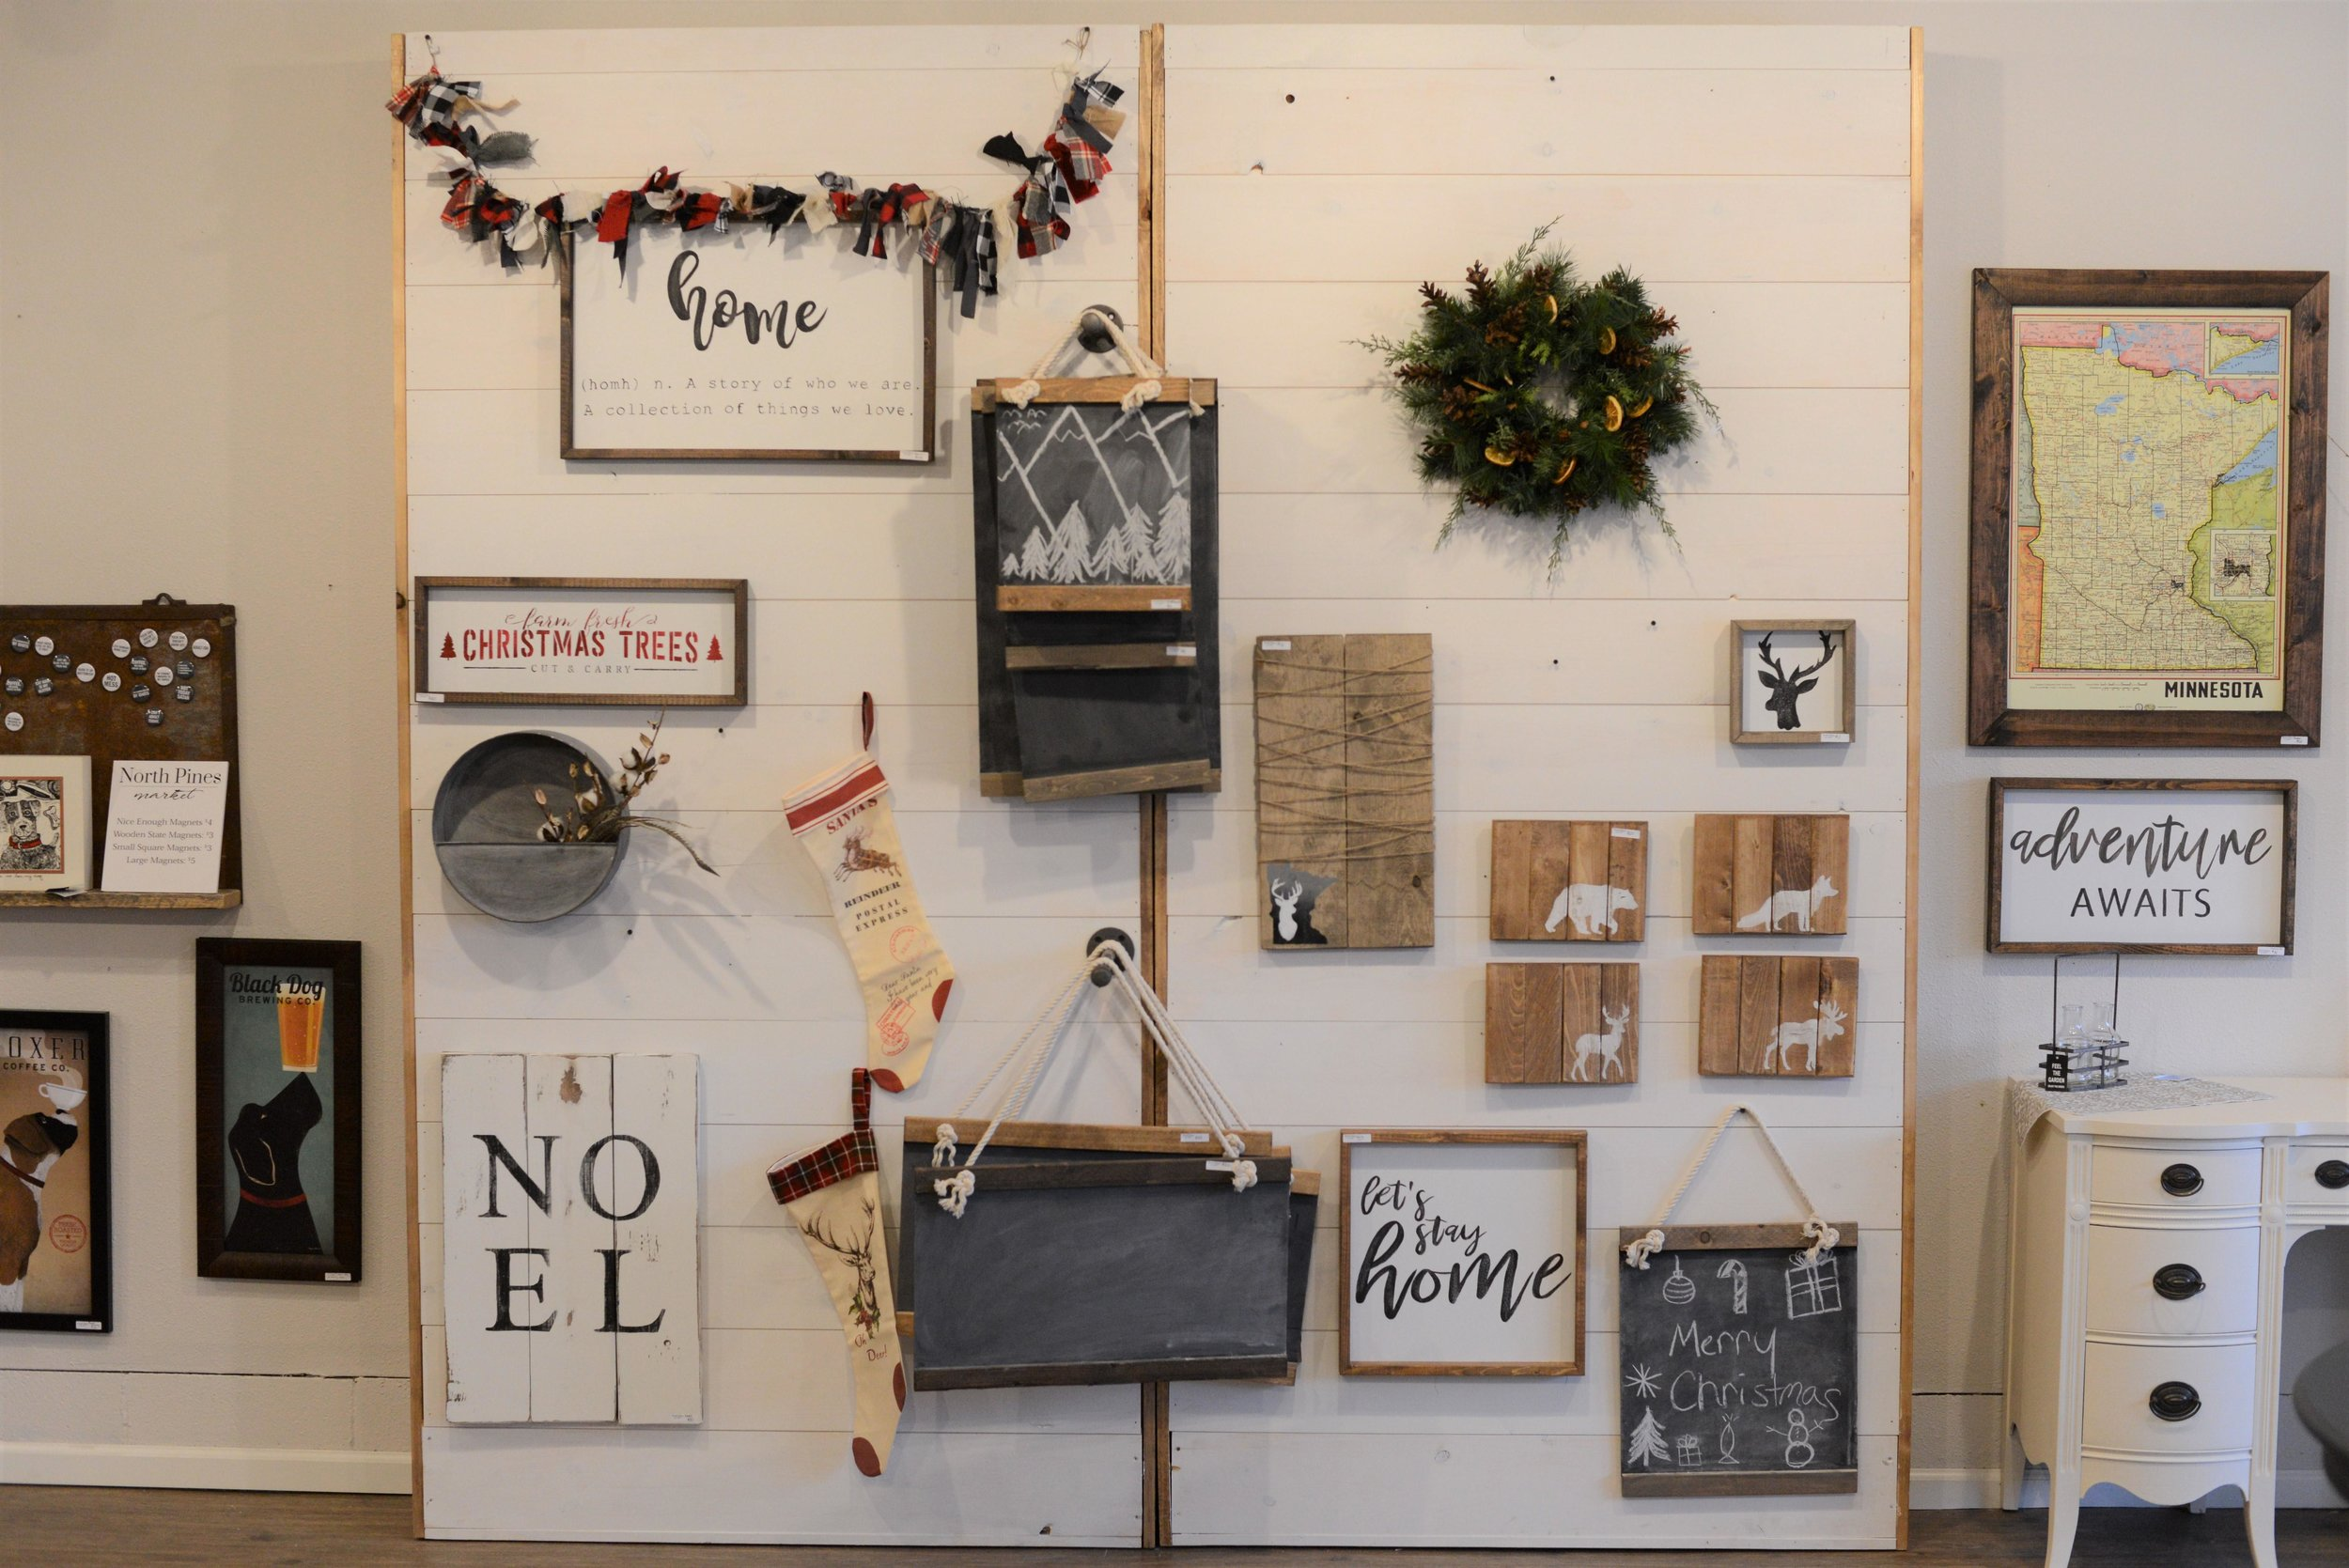 North Pines Market offers locally sourced gifts, custom furniture pieces and workshops making the barn signs pictured here. (Carter Jones / Perham Focus)